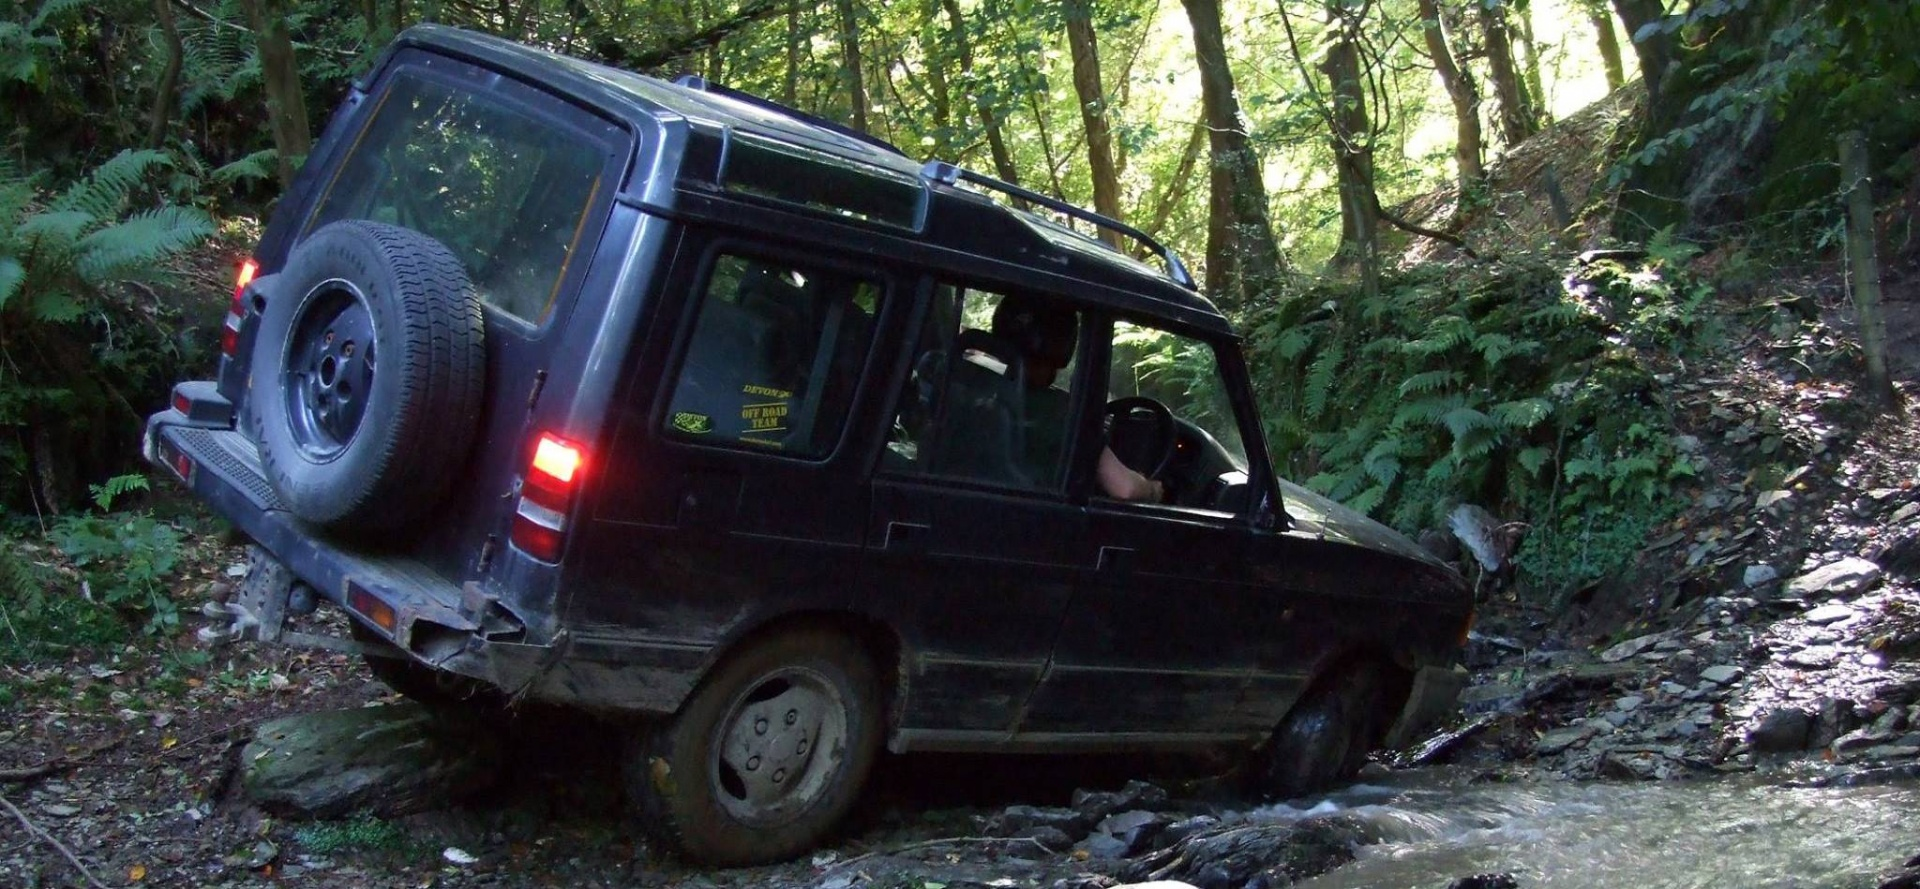 45 Minute 4x4 Driving Experience in Devon - With Passenger-3